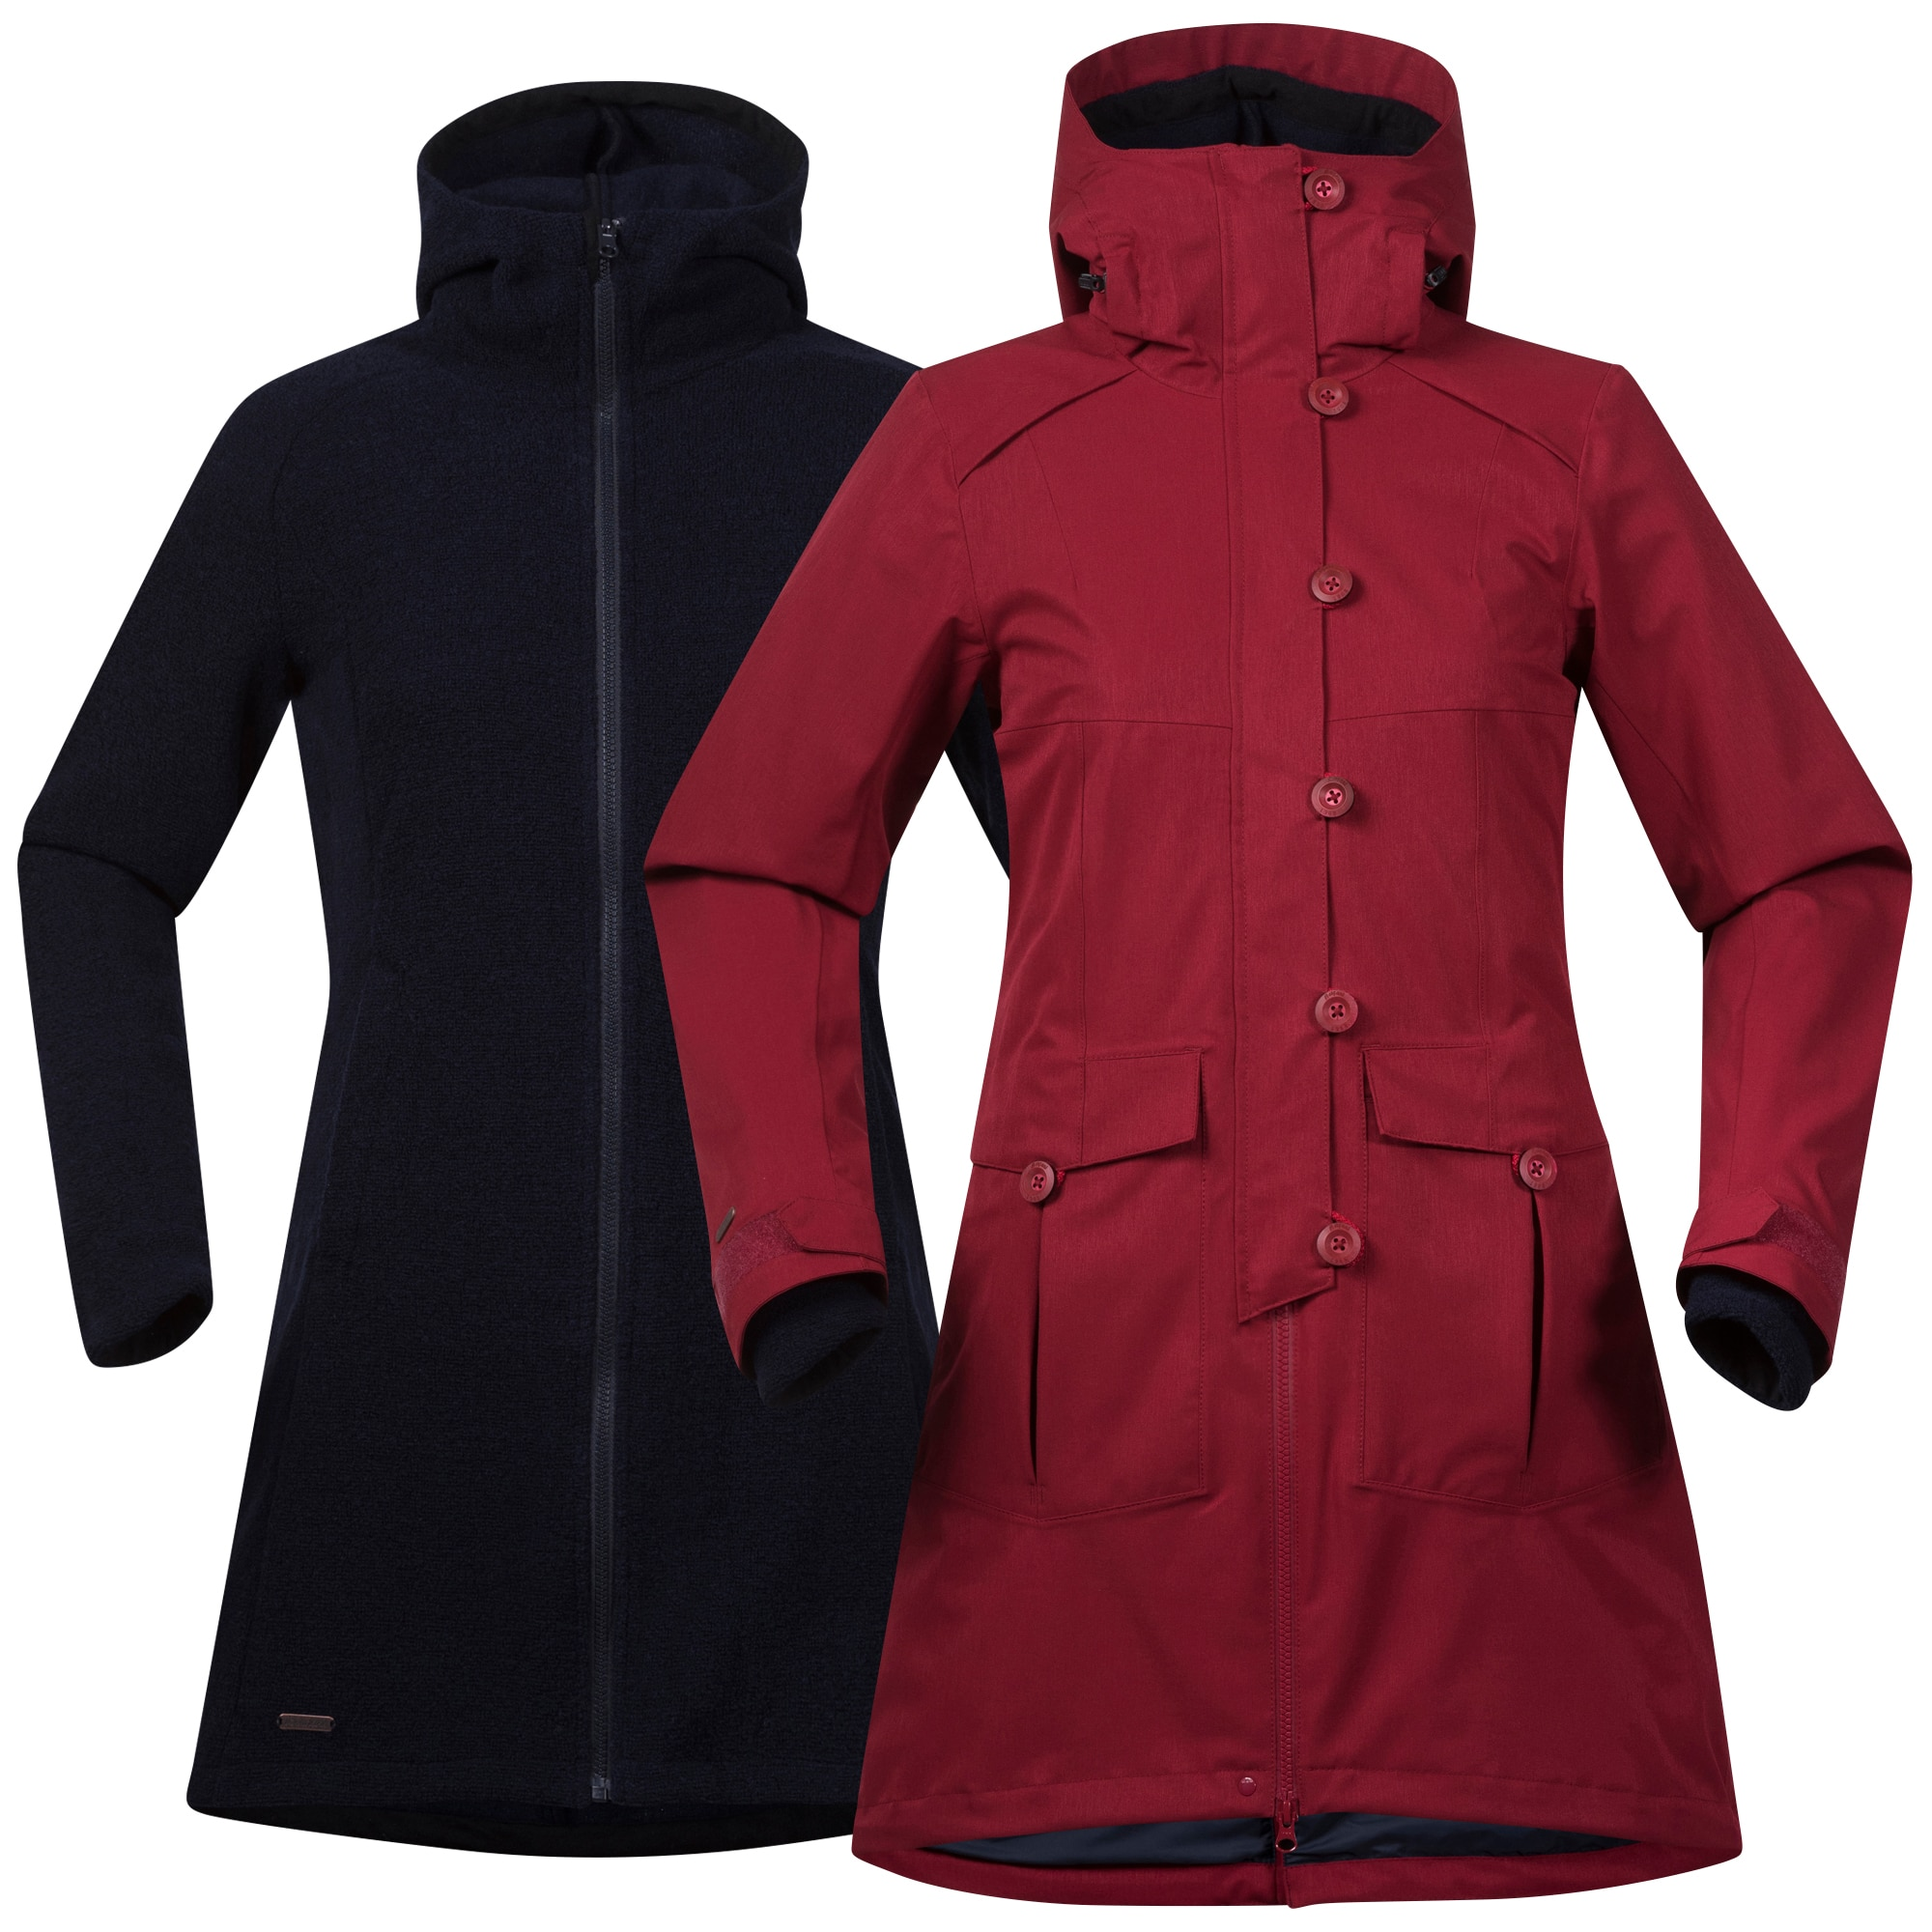 Bjerke 3in1 Lady Jacket